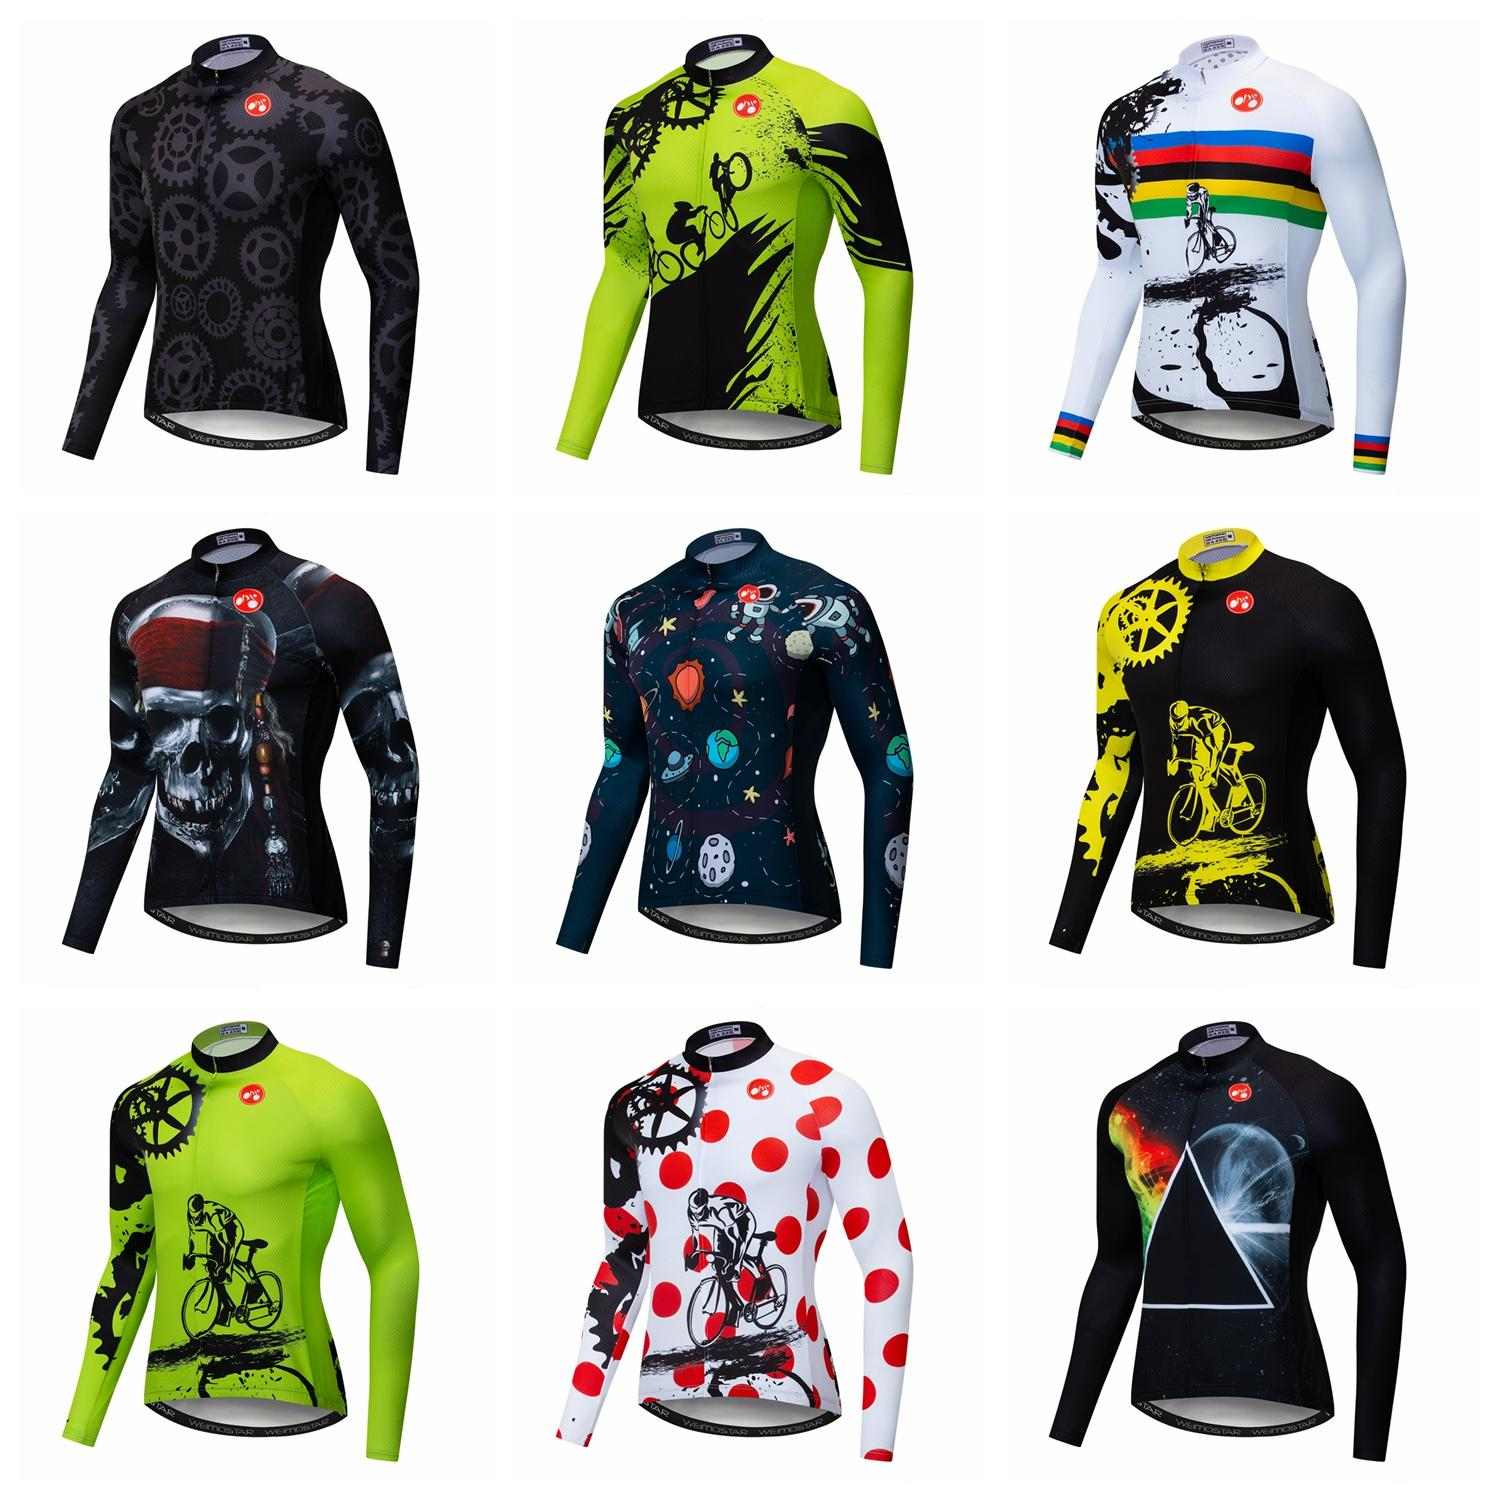 c32d03e99 Aliexpress.com   Buy Weimostar Cycling Jersey Men Winter Autumn Spring  Bicycle Clothing Shirts Long Sleeve Ropa ciclismo MTB Bike Jersey Jackets  from ...